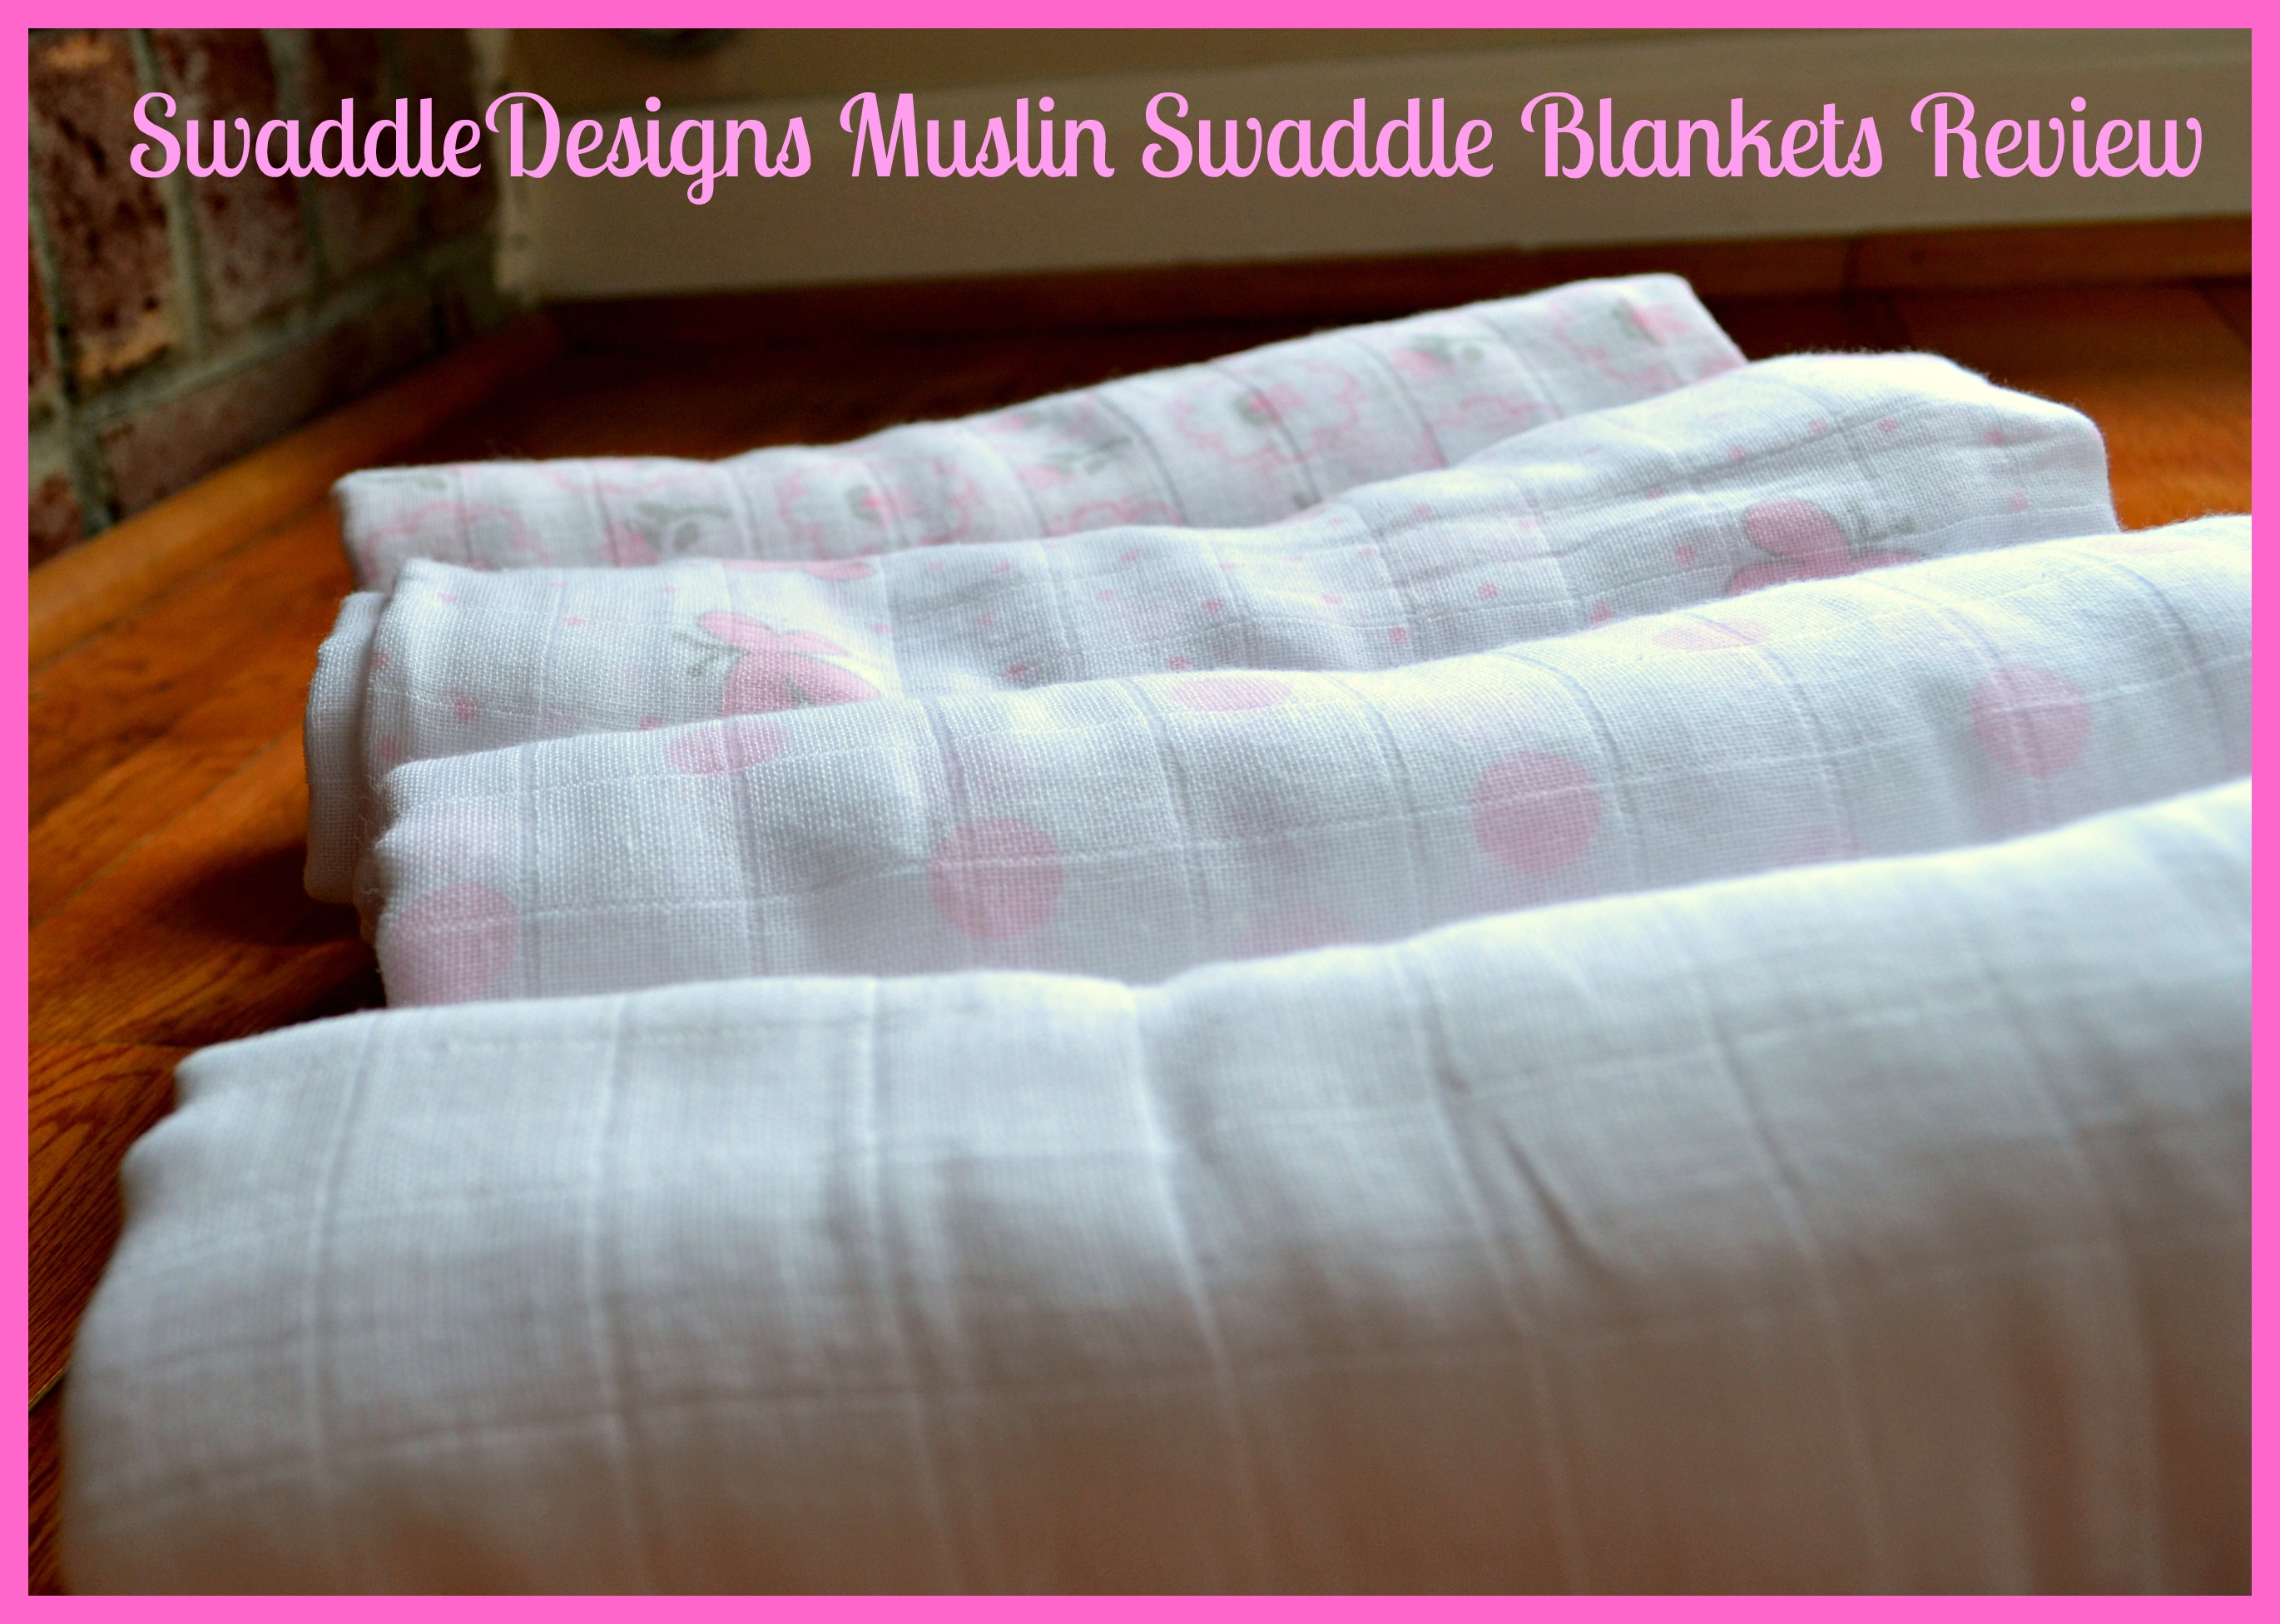 SwaddleDesigns Muslin Swaddle Blankets Review (Getting Ready For Baby Gift Guide)